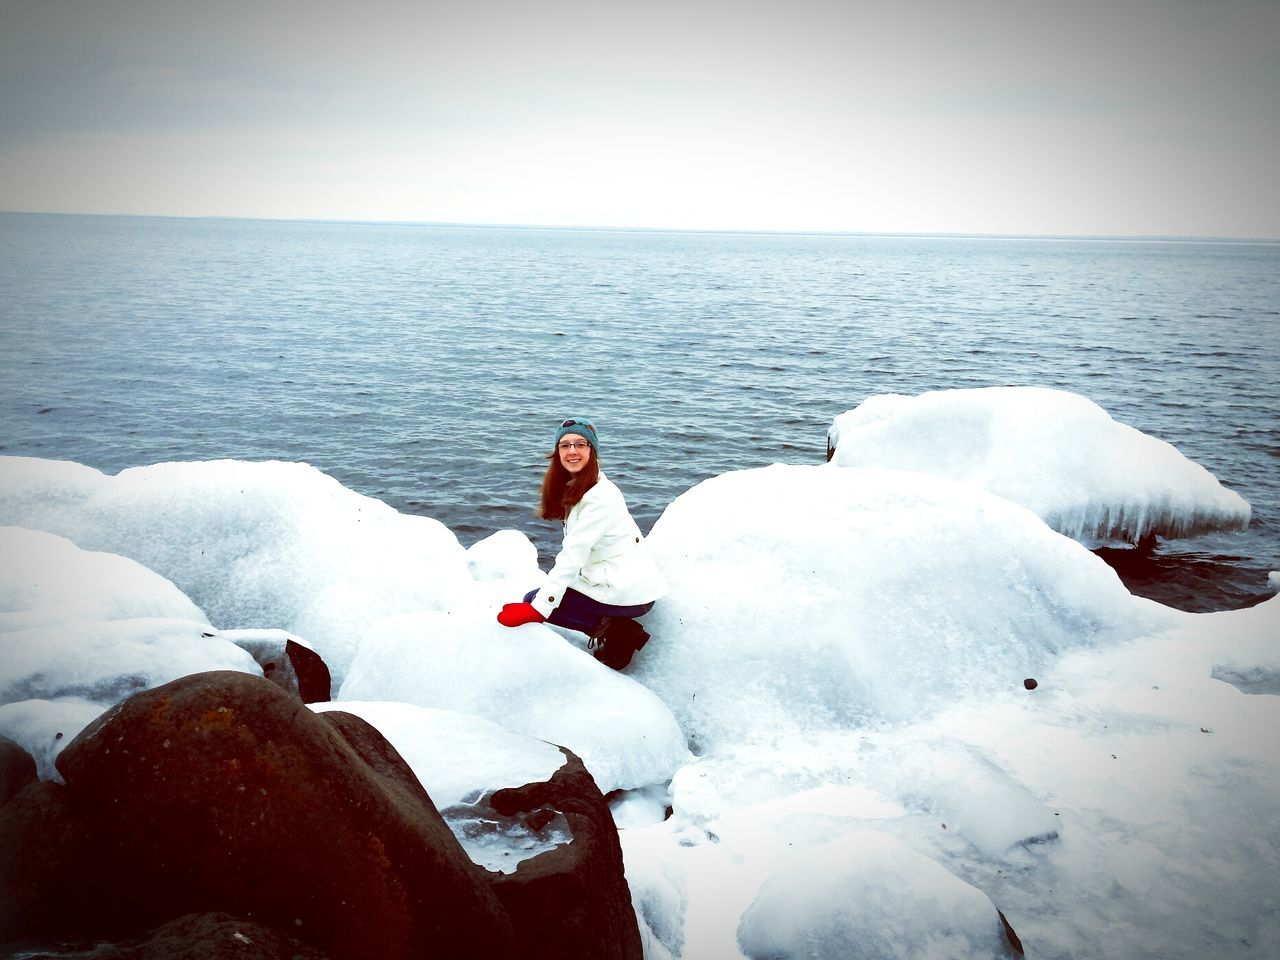 Chance Encounters Lake Superior Icey❄ On The Rocks Cold Winter ❄⛄ Clear Sky Outdoors Nature Lakeshore